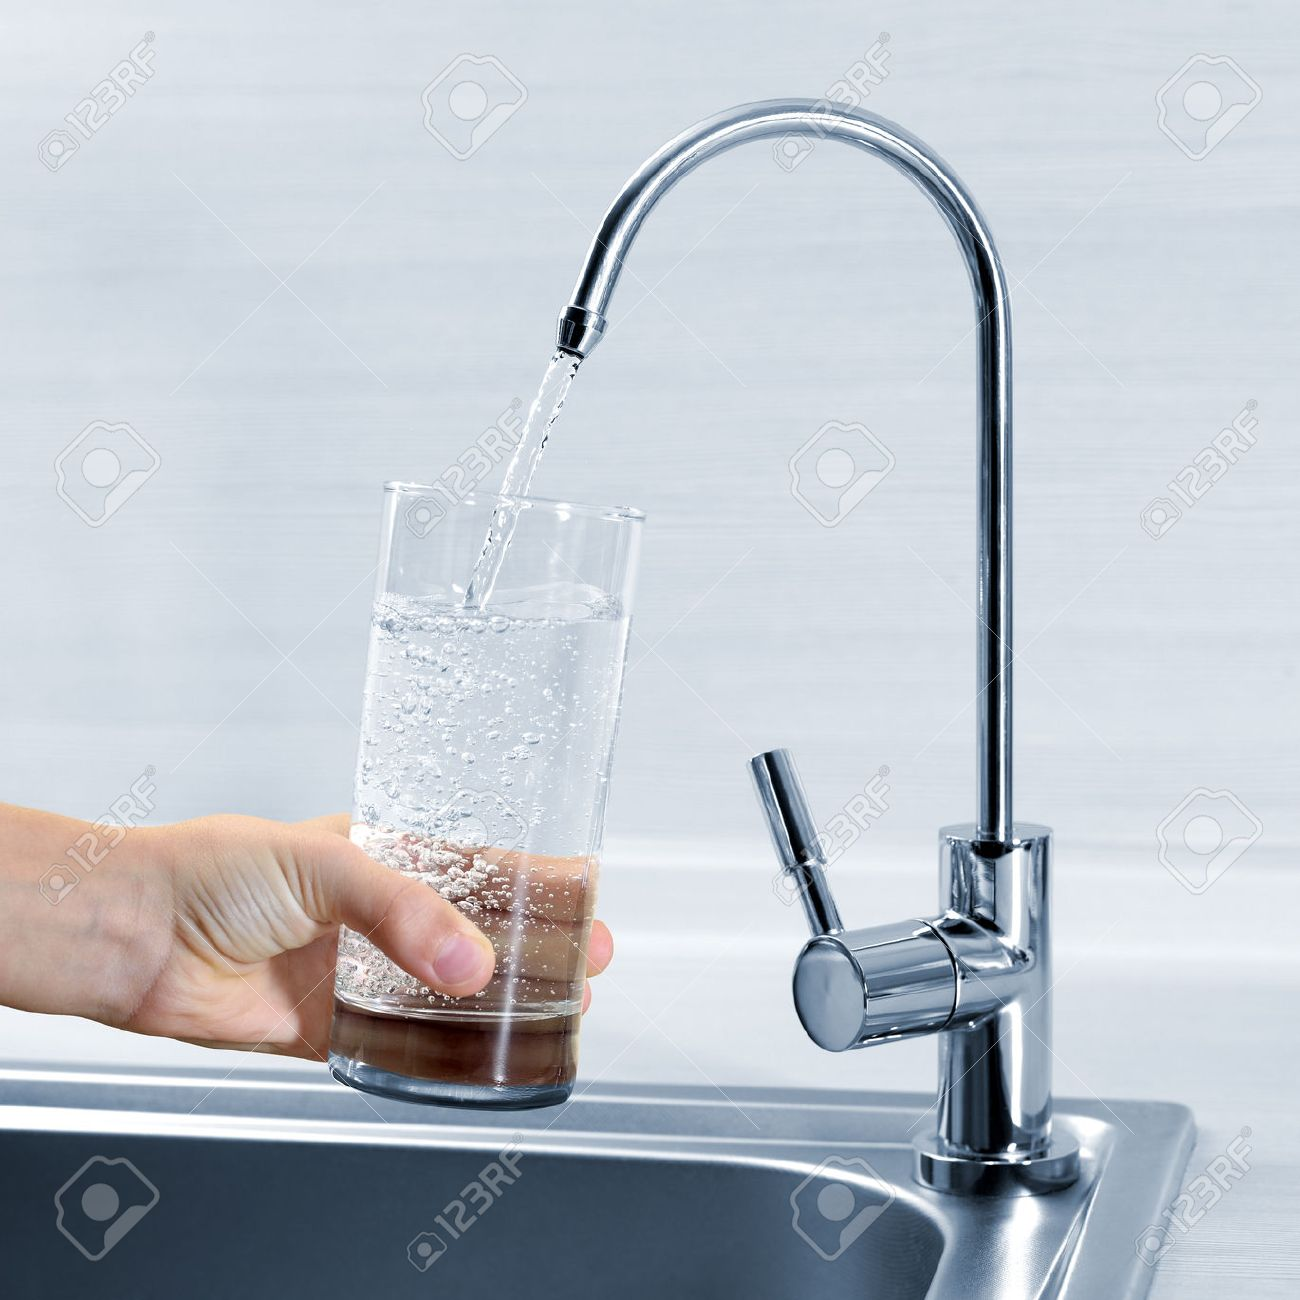 Filling Glass Of Water In Hand From Kitchen Faucet Stock Photo ...